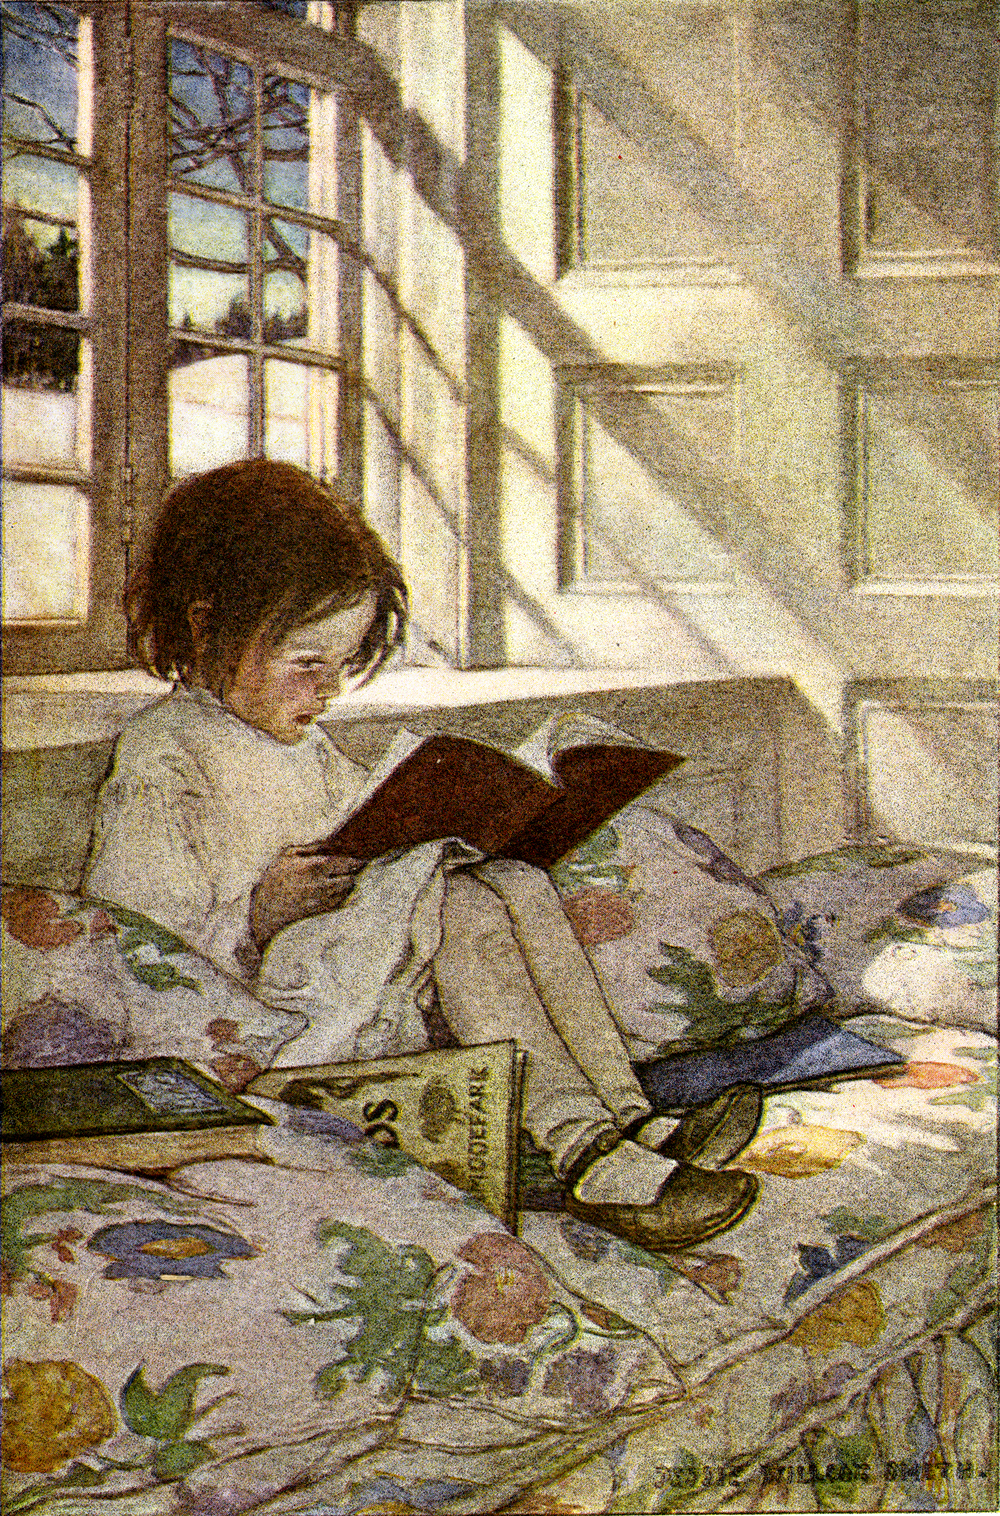 Beautiful vintage illustration by Jessie Wilcox Smith